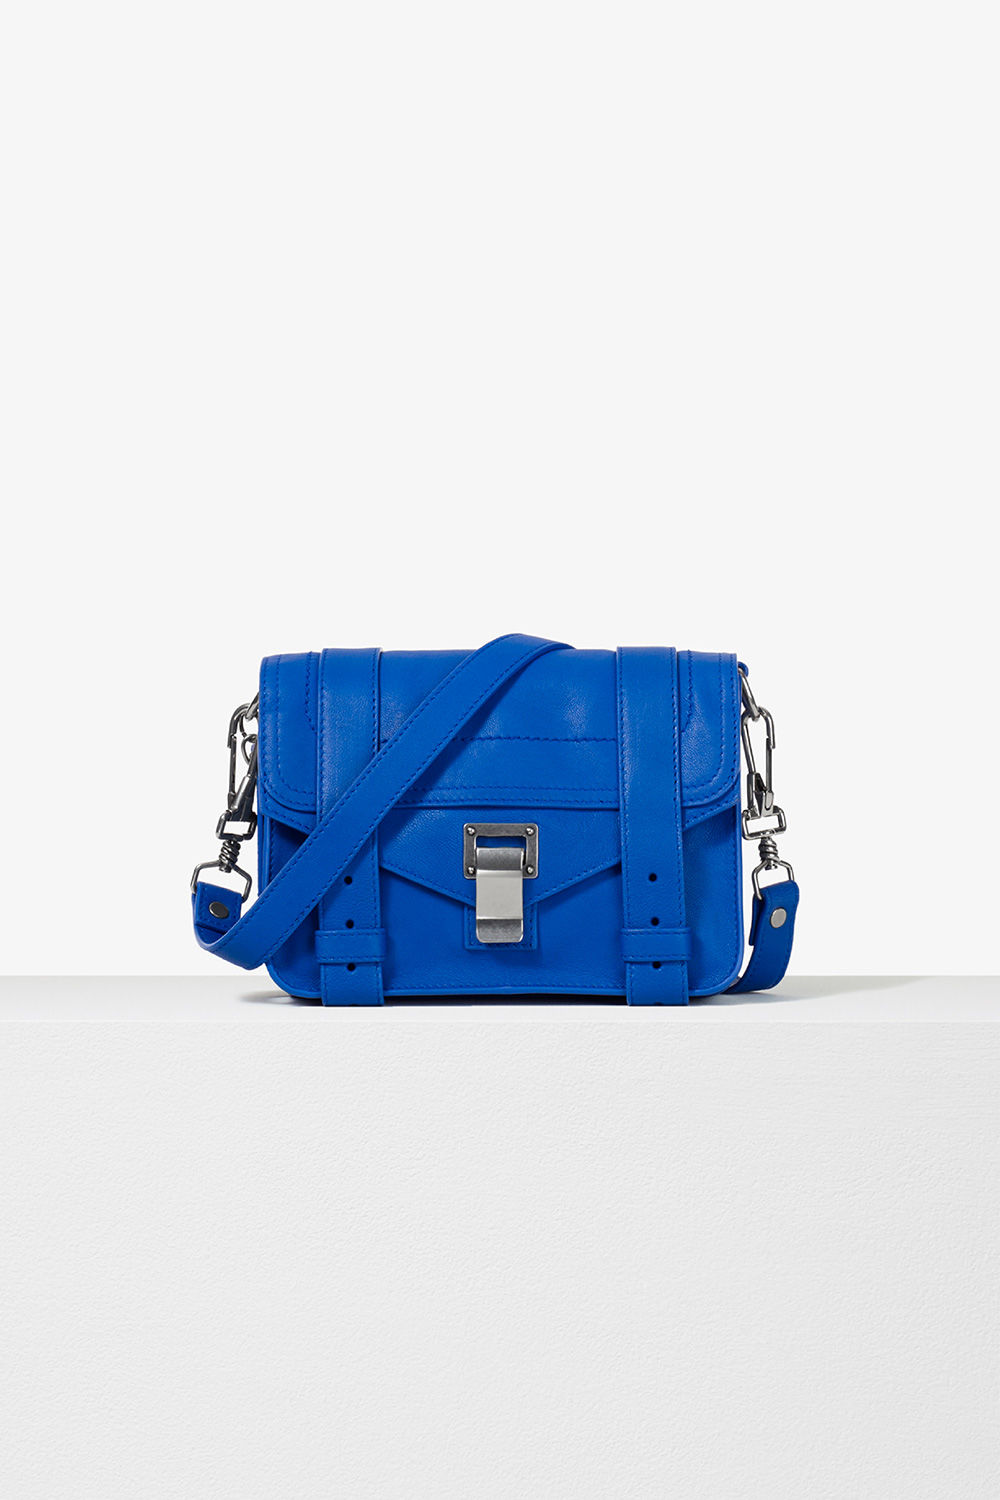 proenza schouler pre spring 2017 memphis blue lux leather ps1 mini crossbody bag